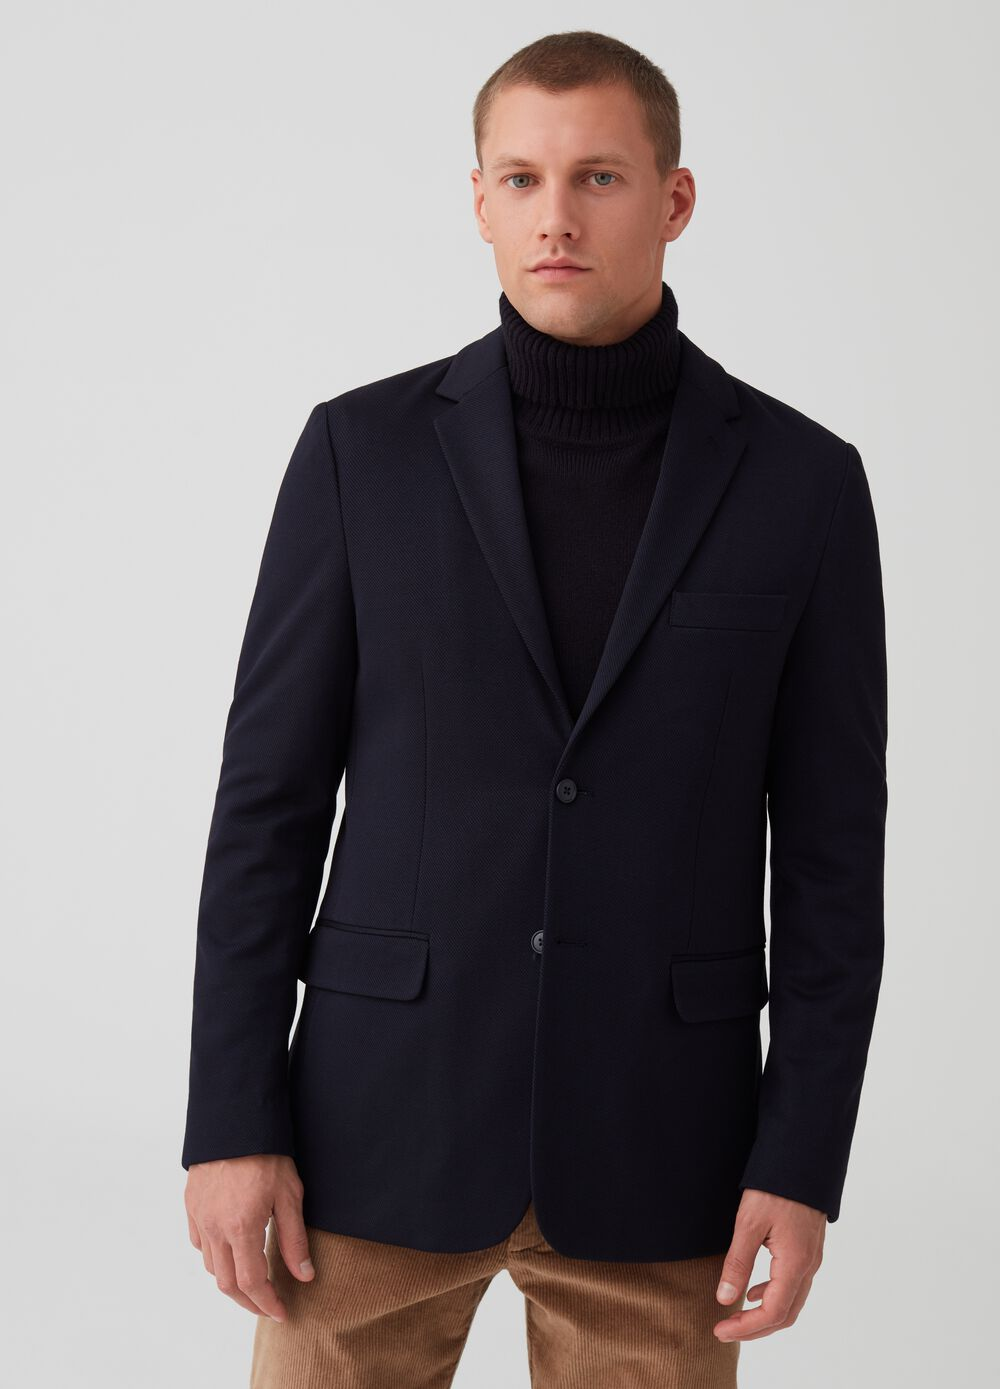 Knitted fabric blazer with two buttons